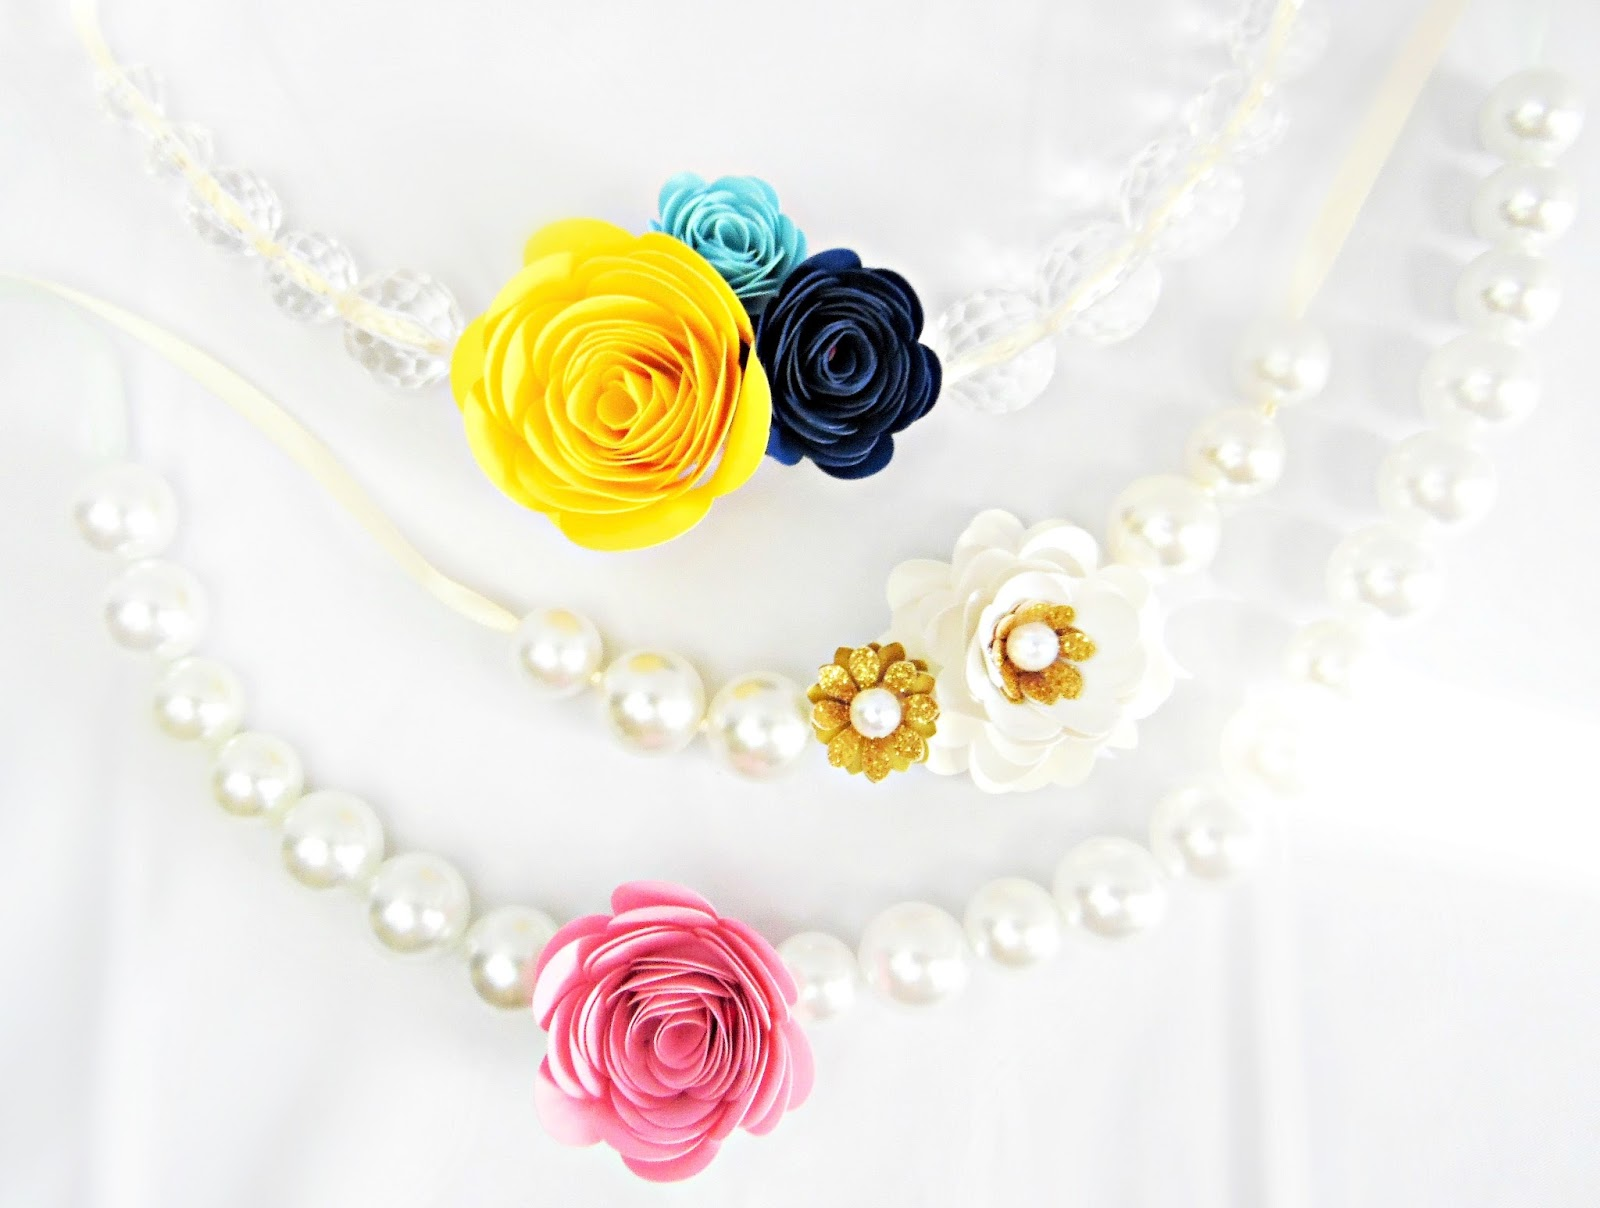 Mamas gone crafty diy paper flower statement necklace a pretty paper flower statement necklace a great craft to do with your daughter or just to accessorize yourself mightylinksfo